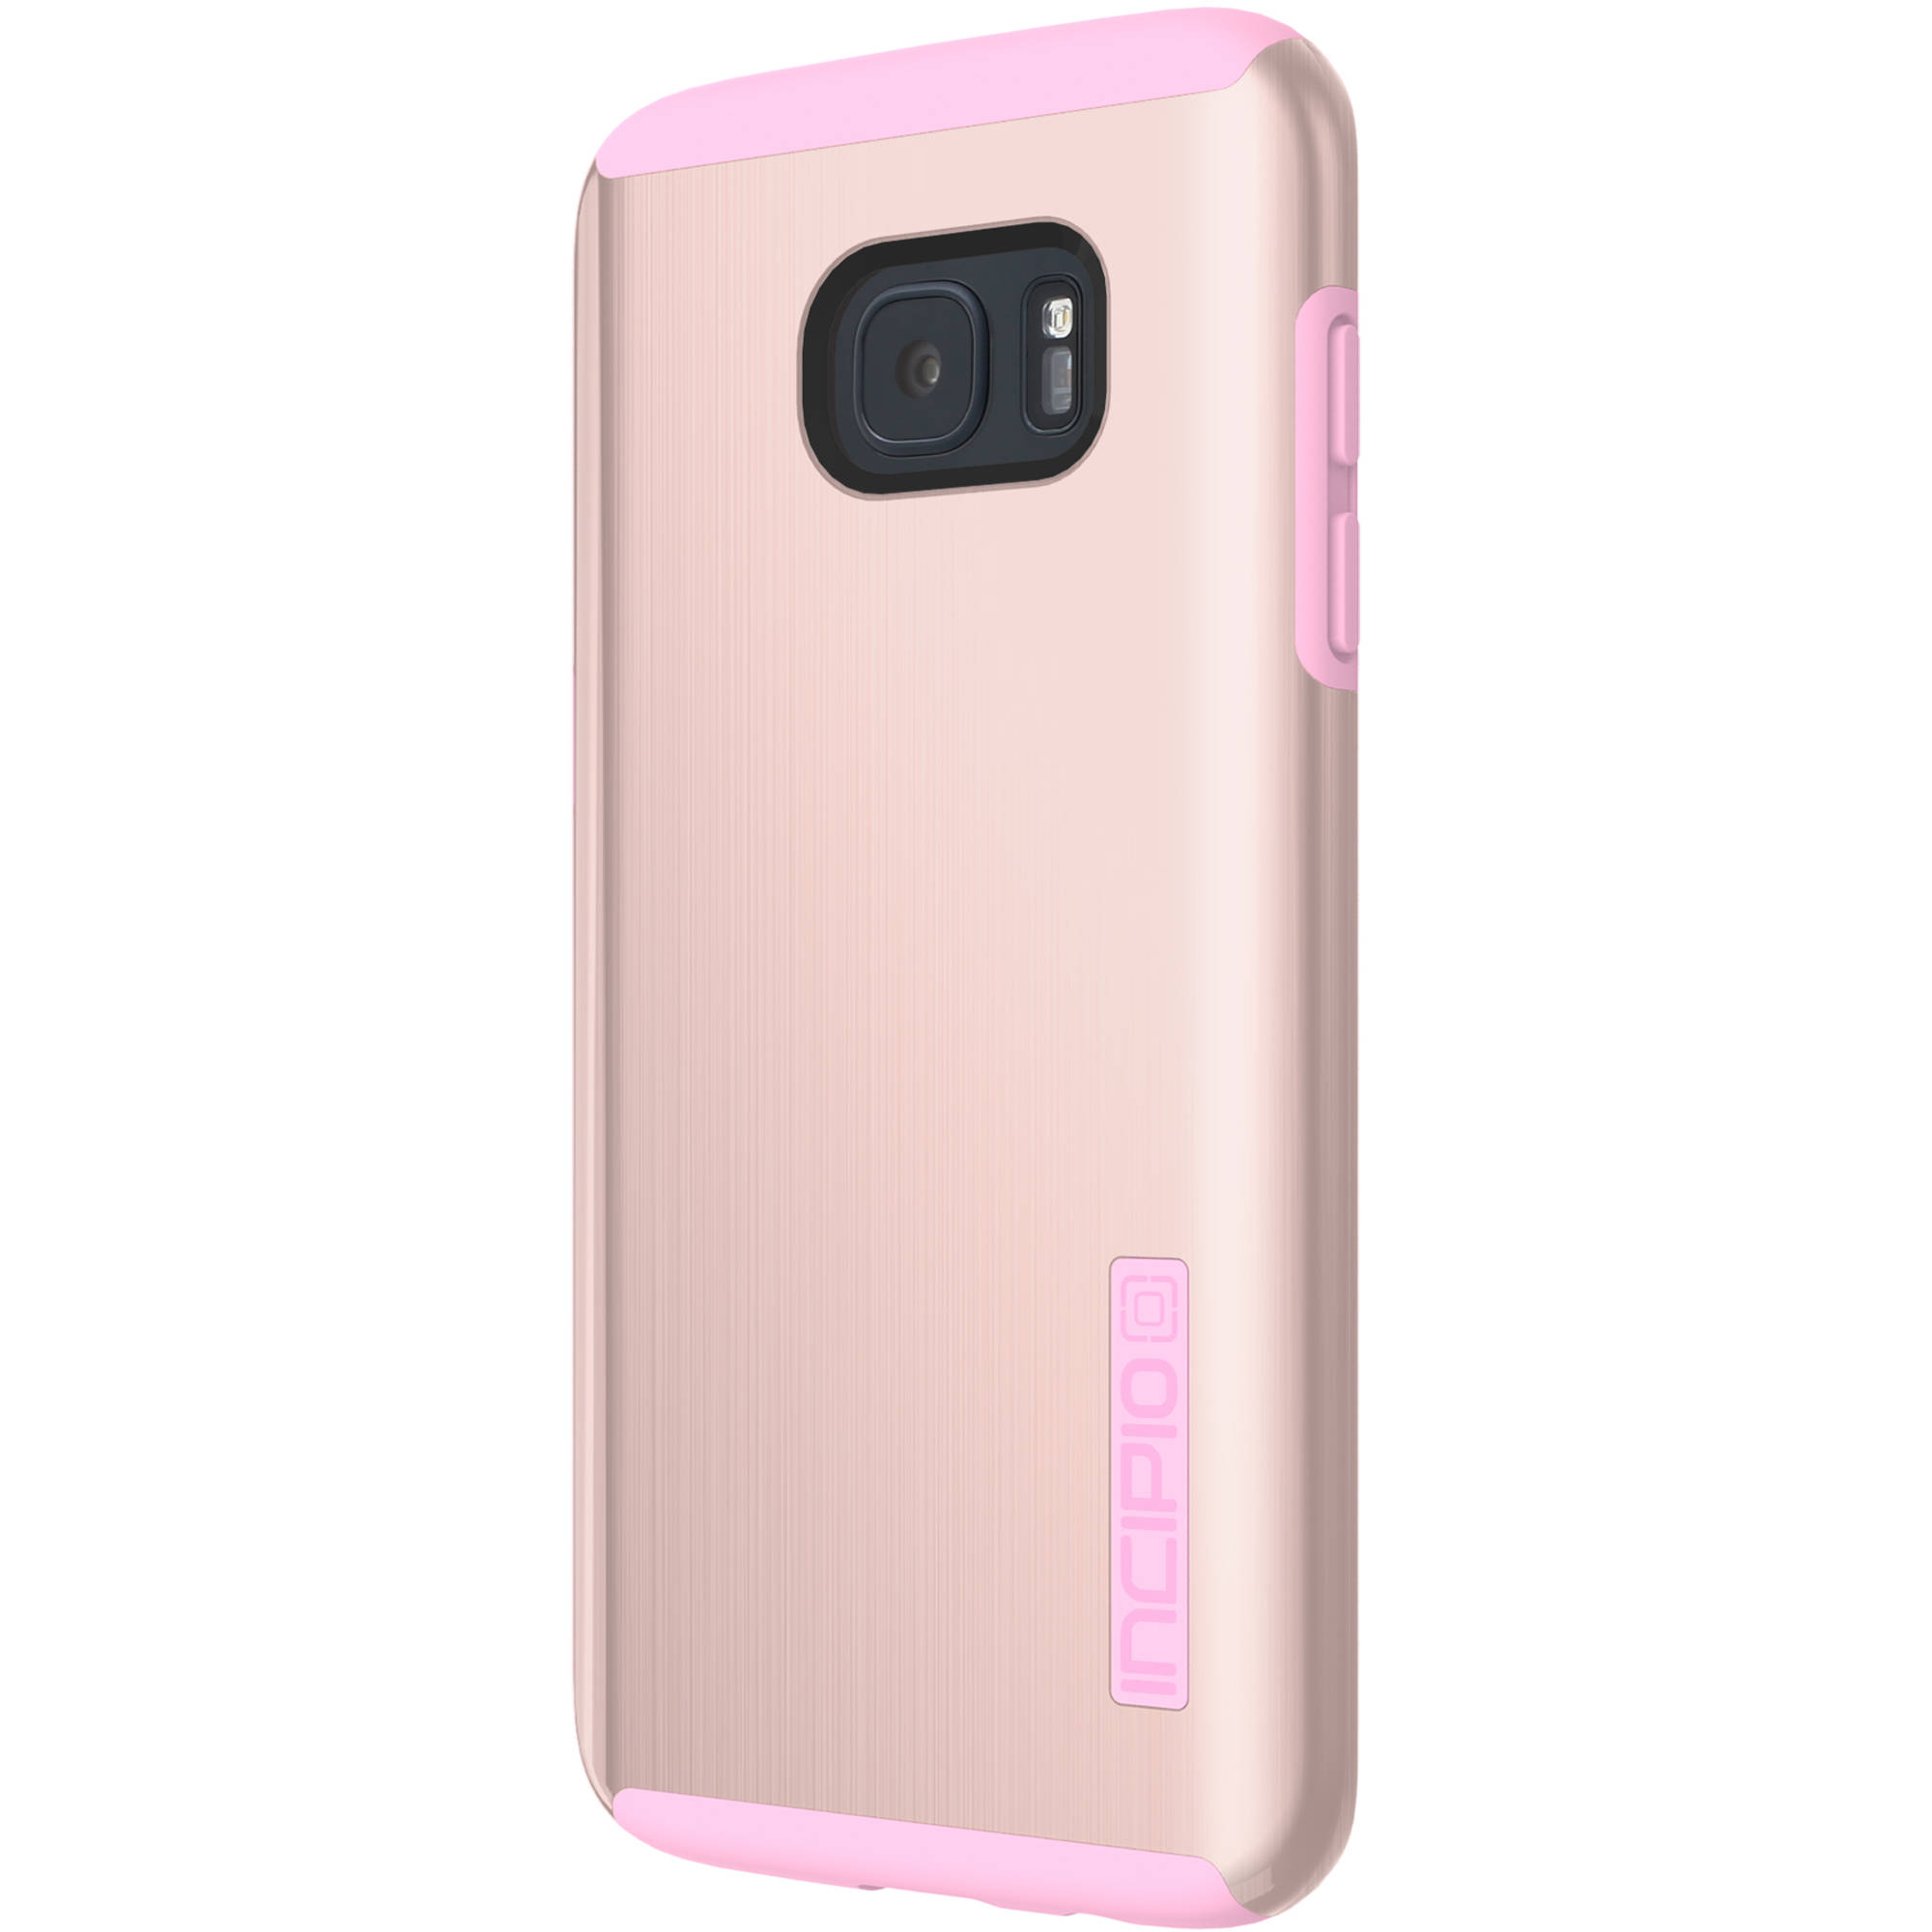 size 40 b4d25 f0241 Incipio DualPro SHINE Case for Galaxy S7 edge (Gold/Pink)